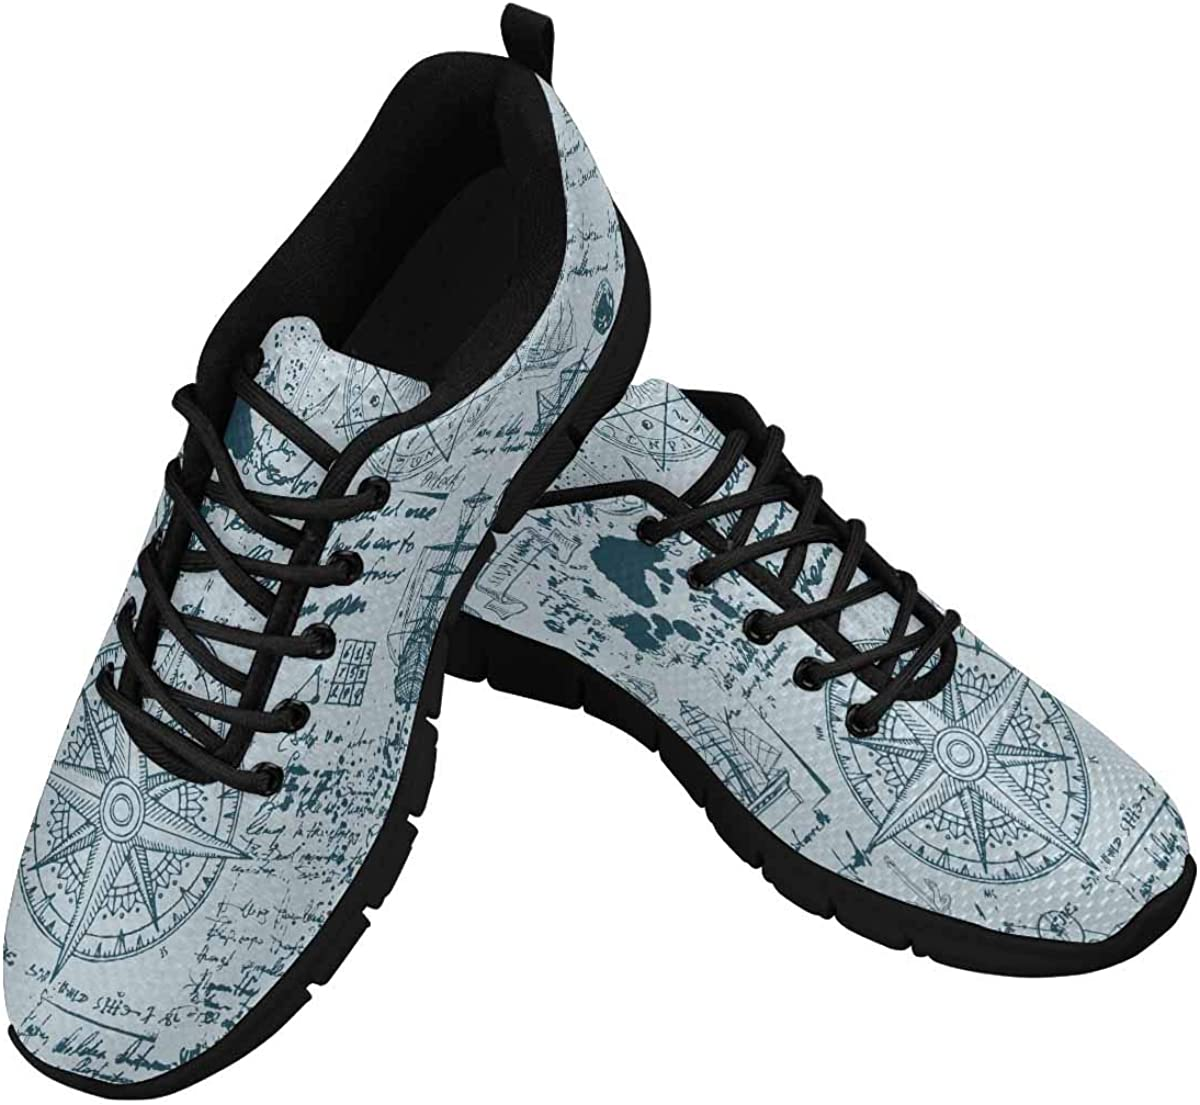 InterestPrint Old Manuscript with Caravels, Wind Rose Women's Lace Up Breathable Non Slip Sneaker